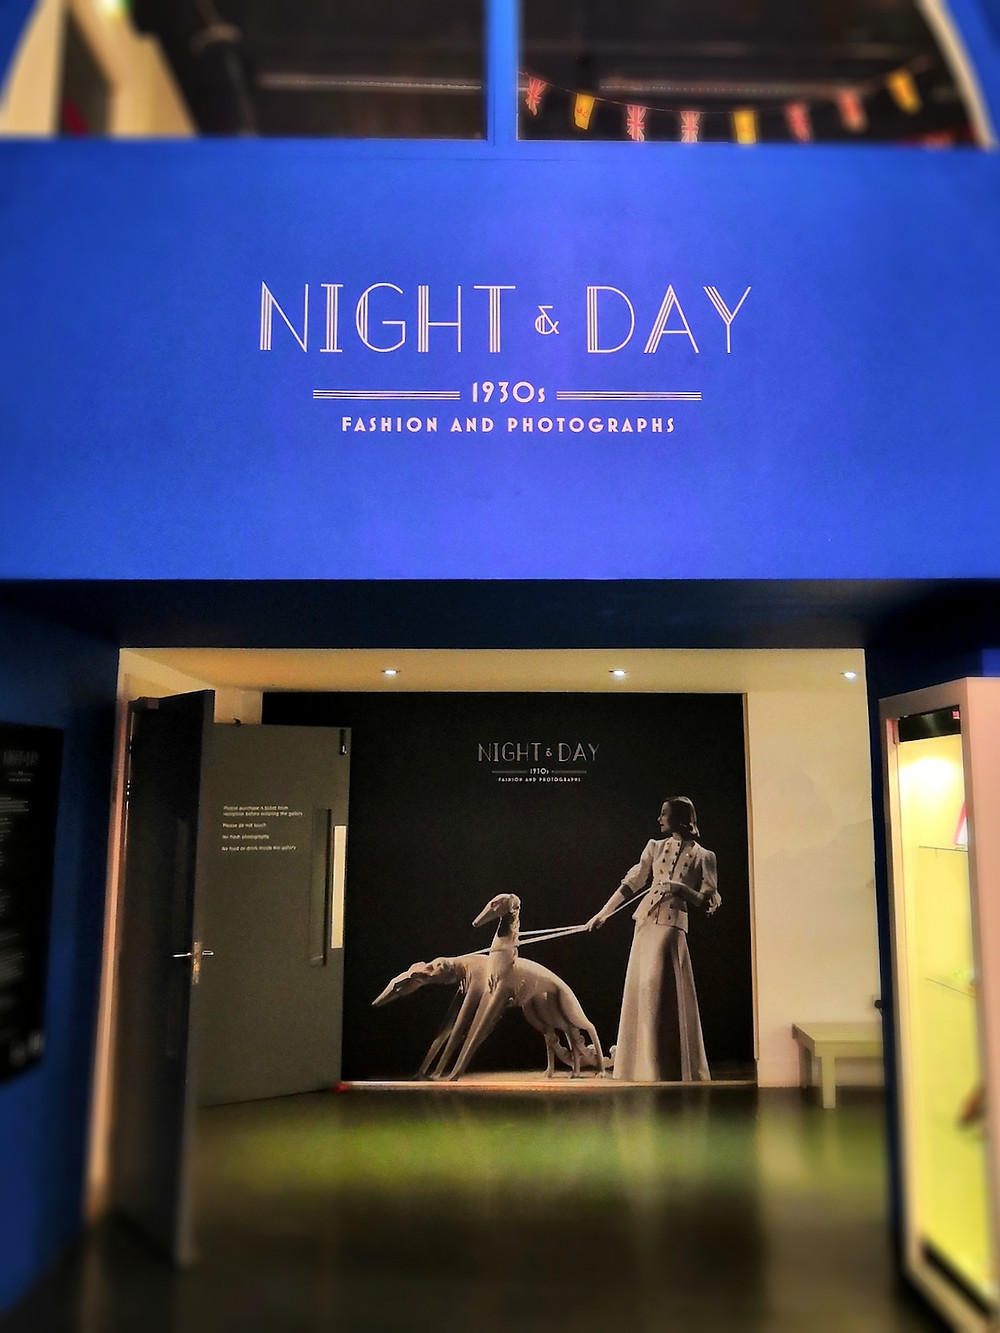 Night & day - 1930s fashion and photographs